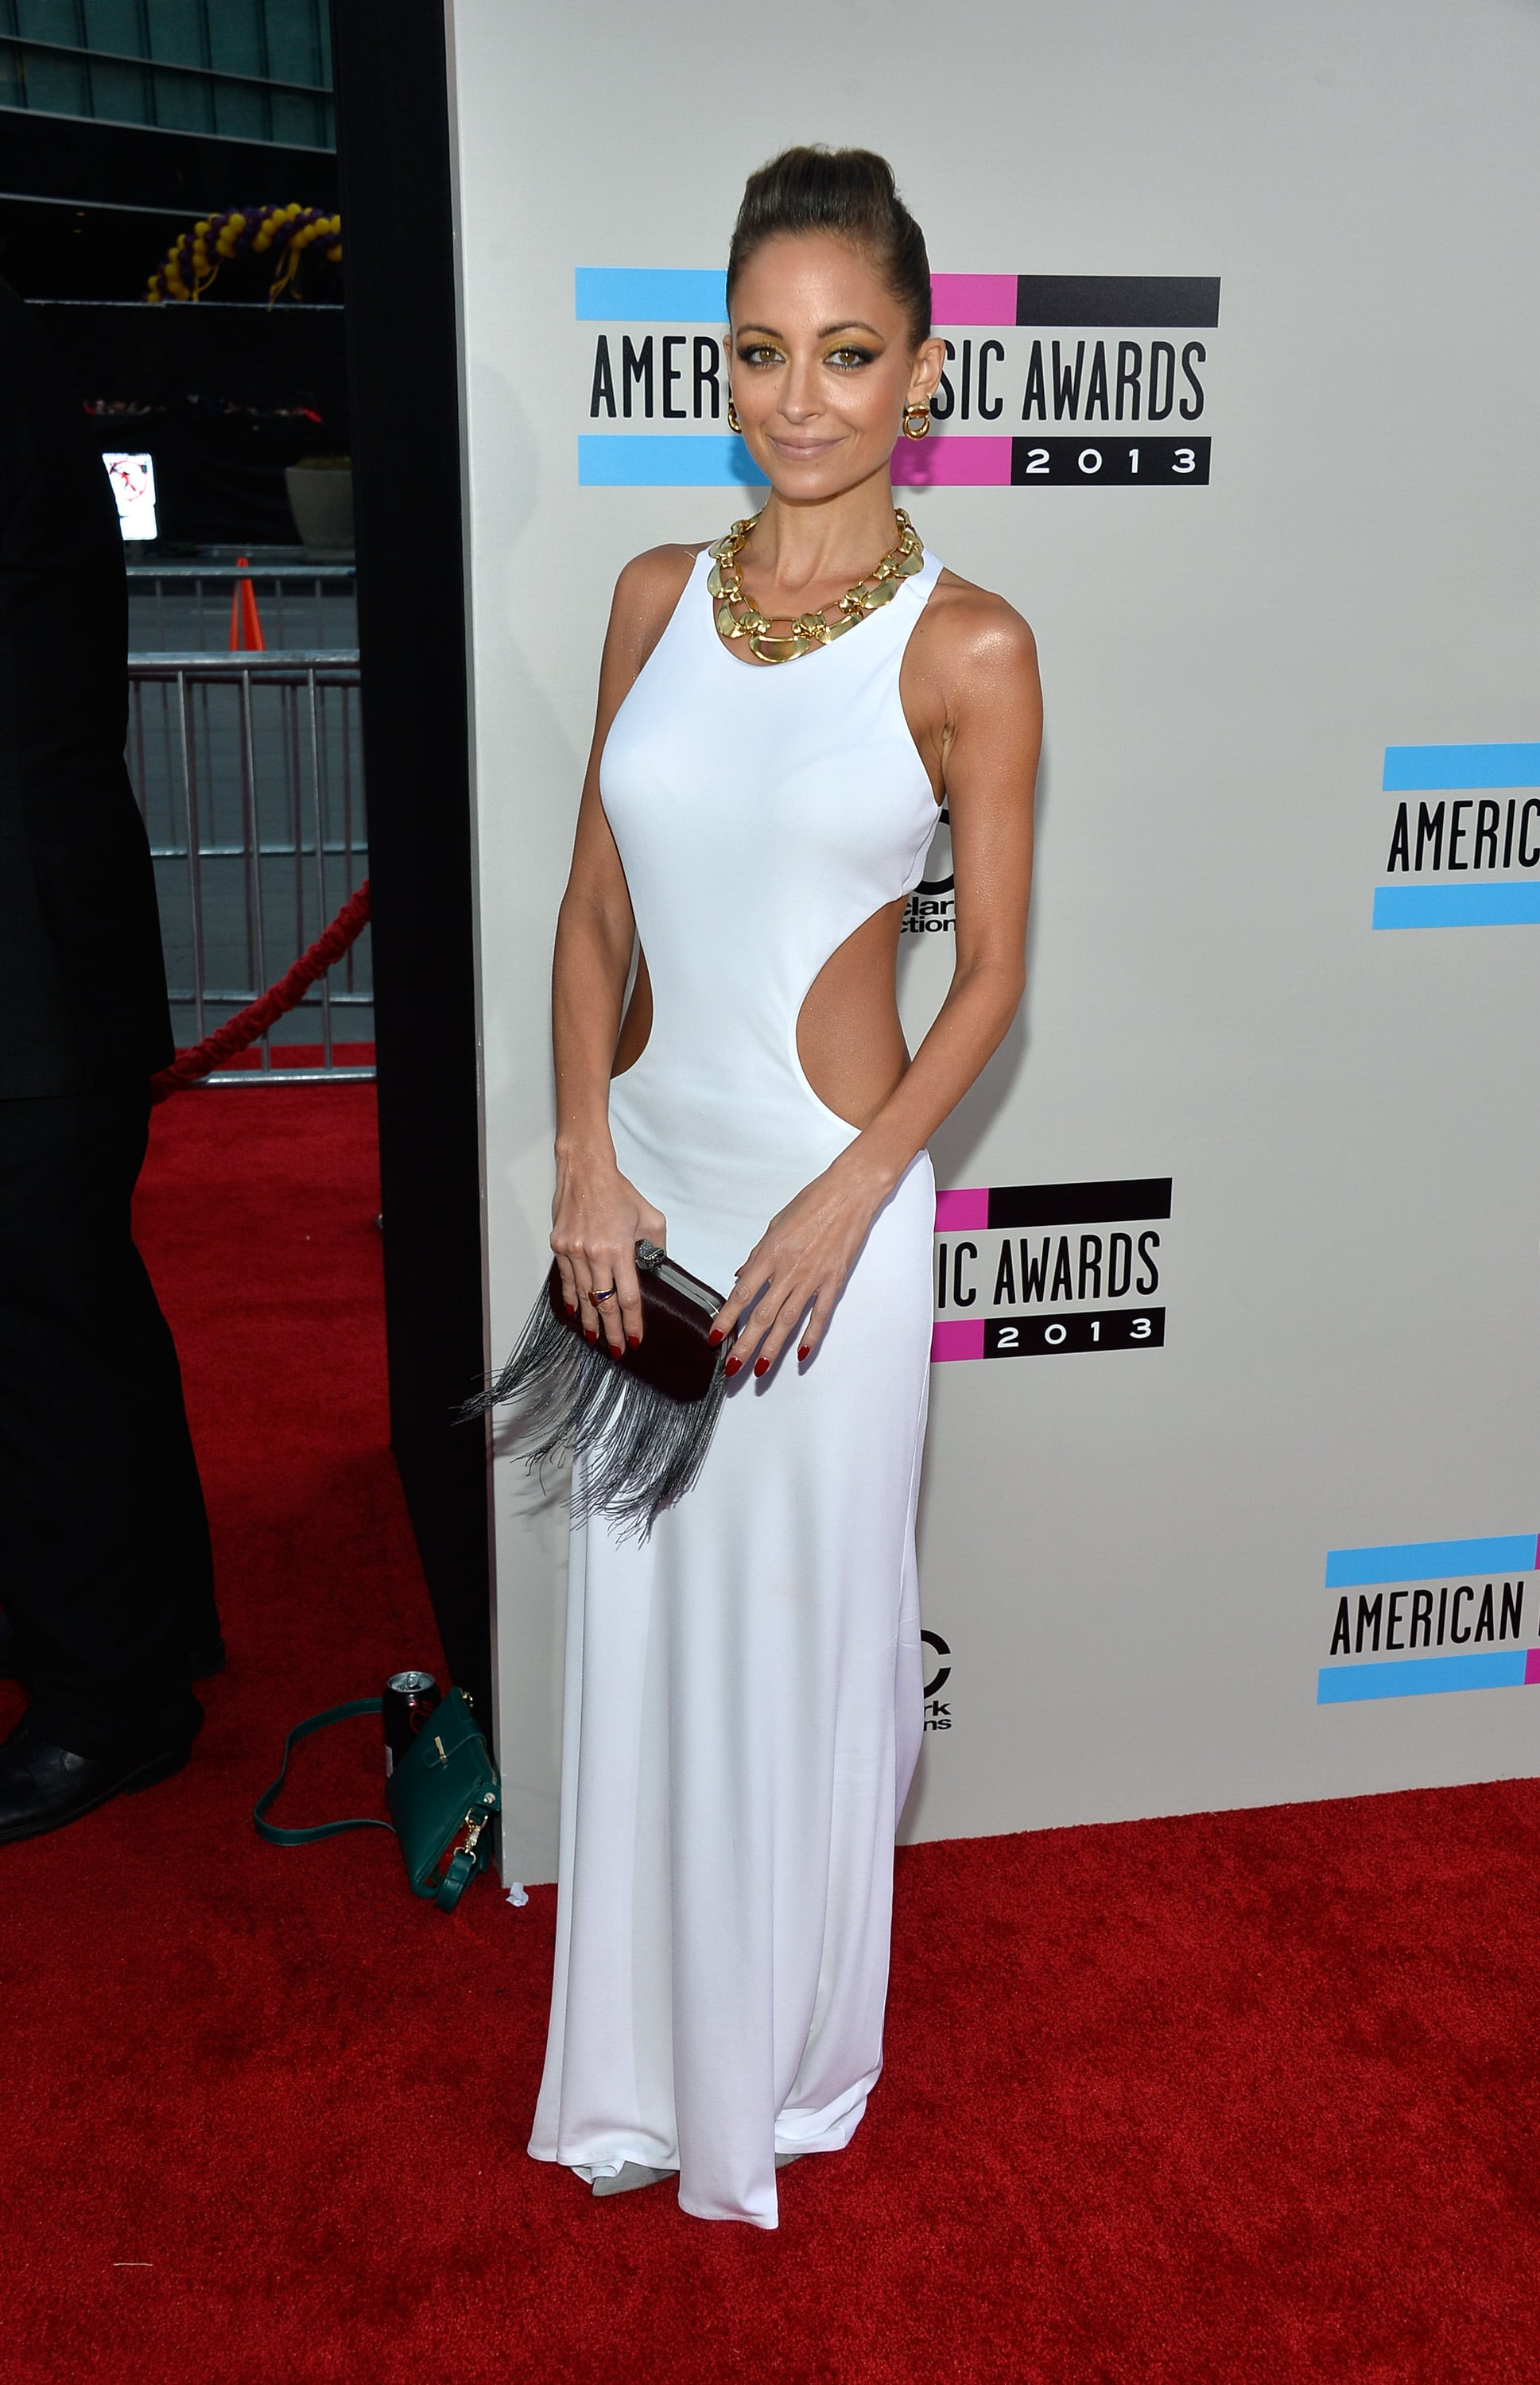 Nicole Richie arrived at the 2013 American Music Awards.